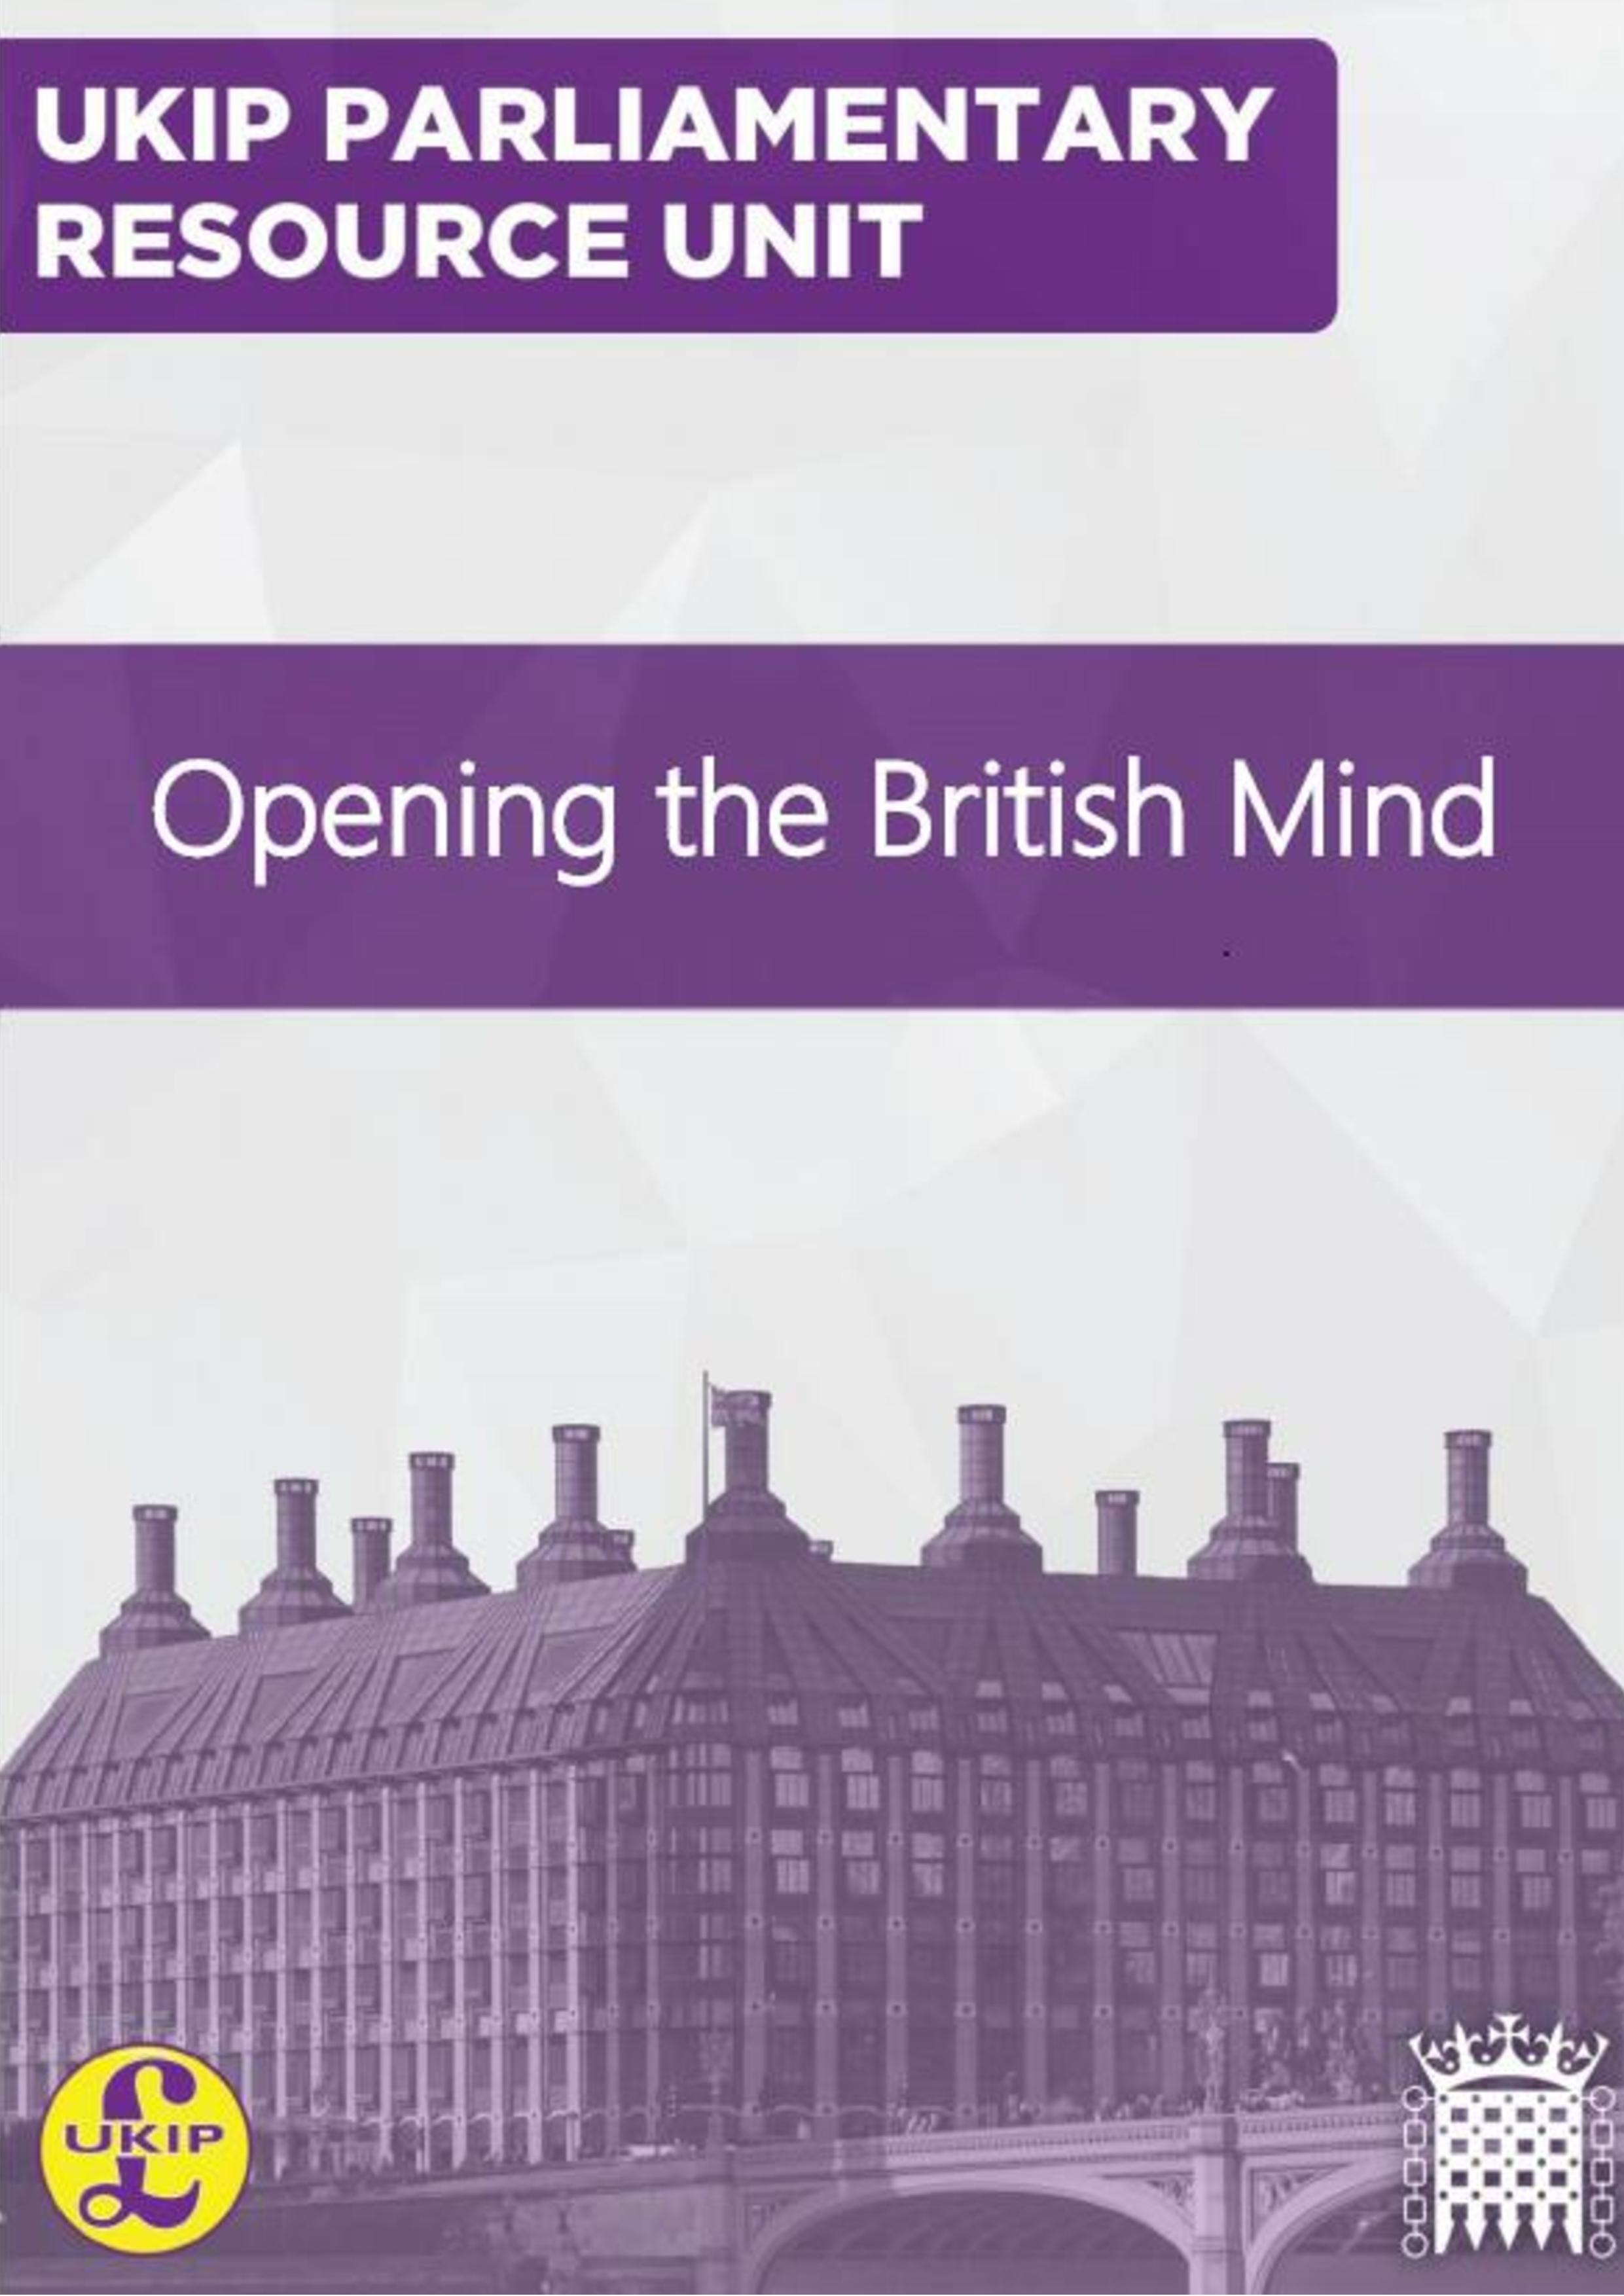 Opening_the_British_Mind-page-001.jpg